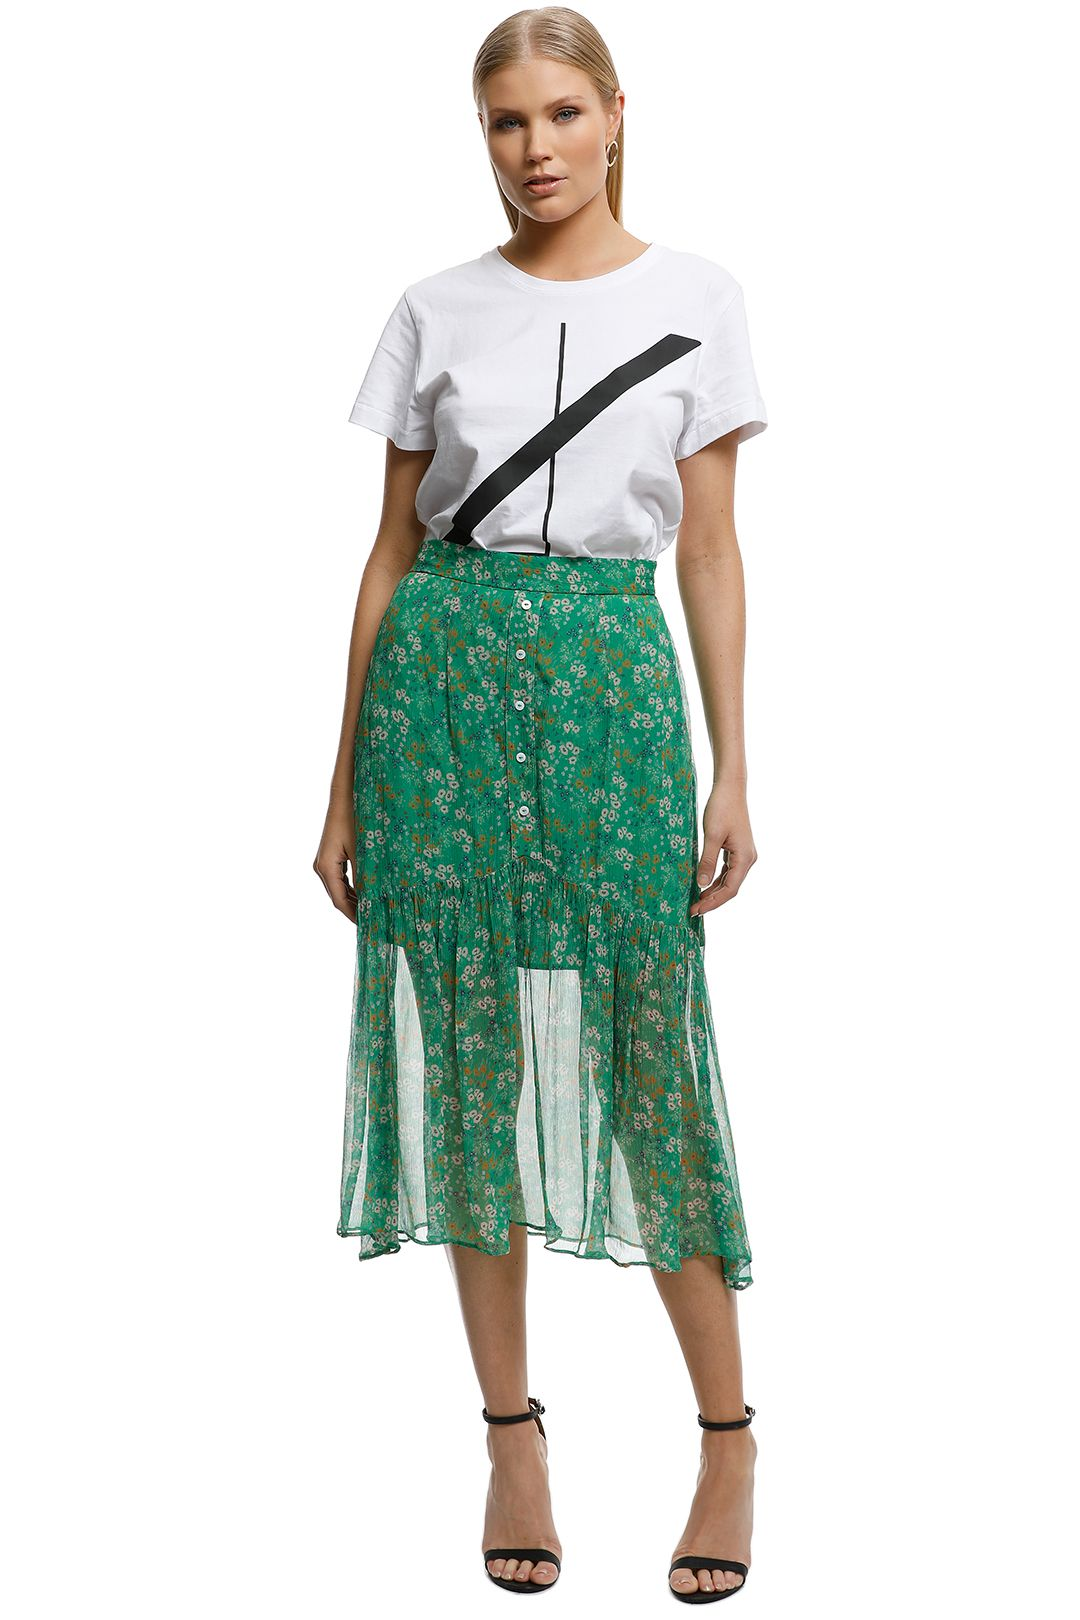 Stevie May - Jade Valentine Skirt - Green - Front